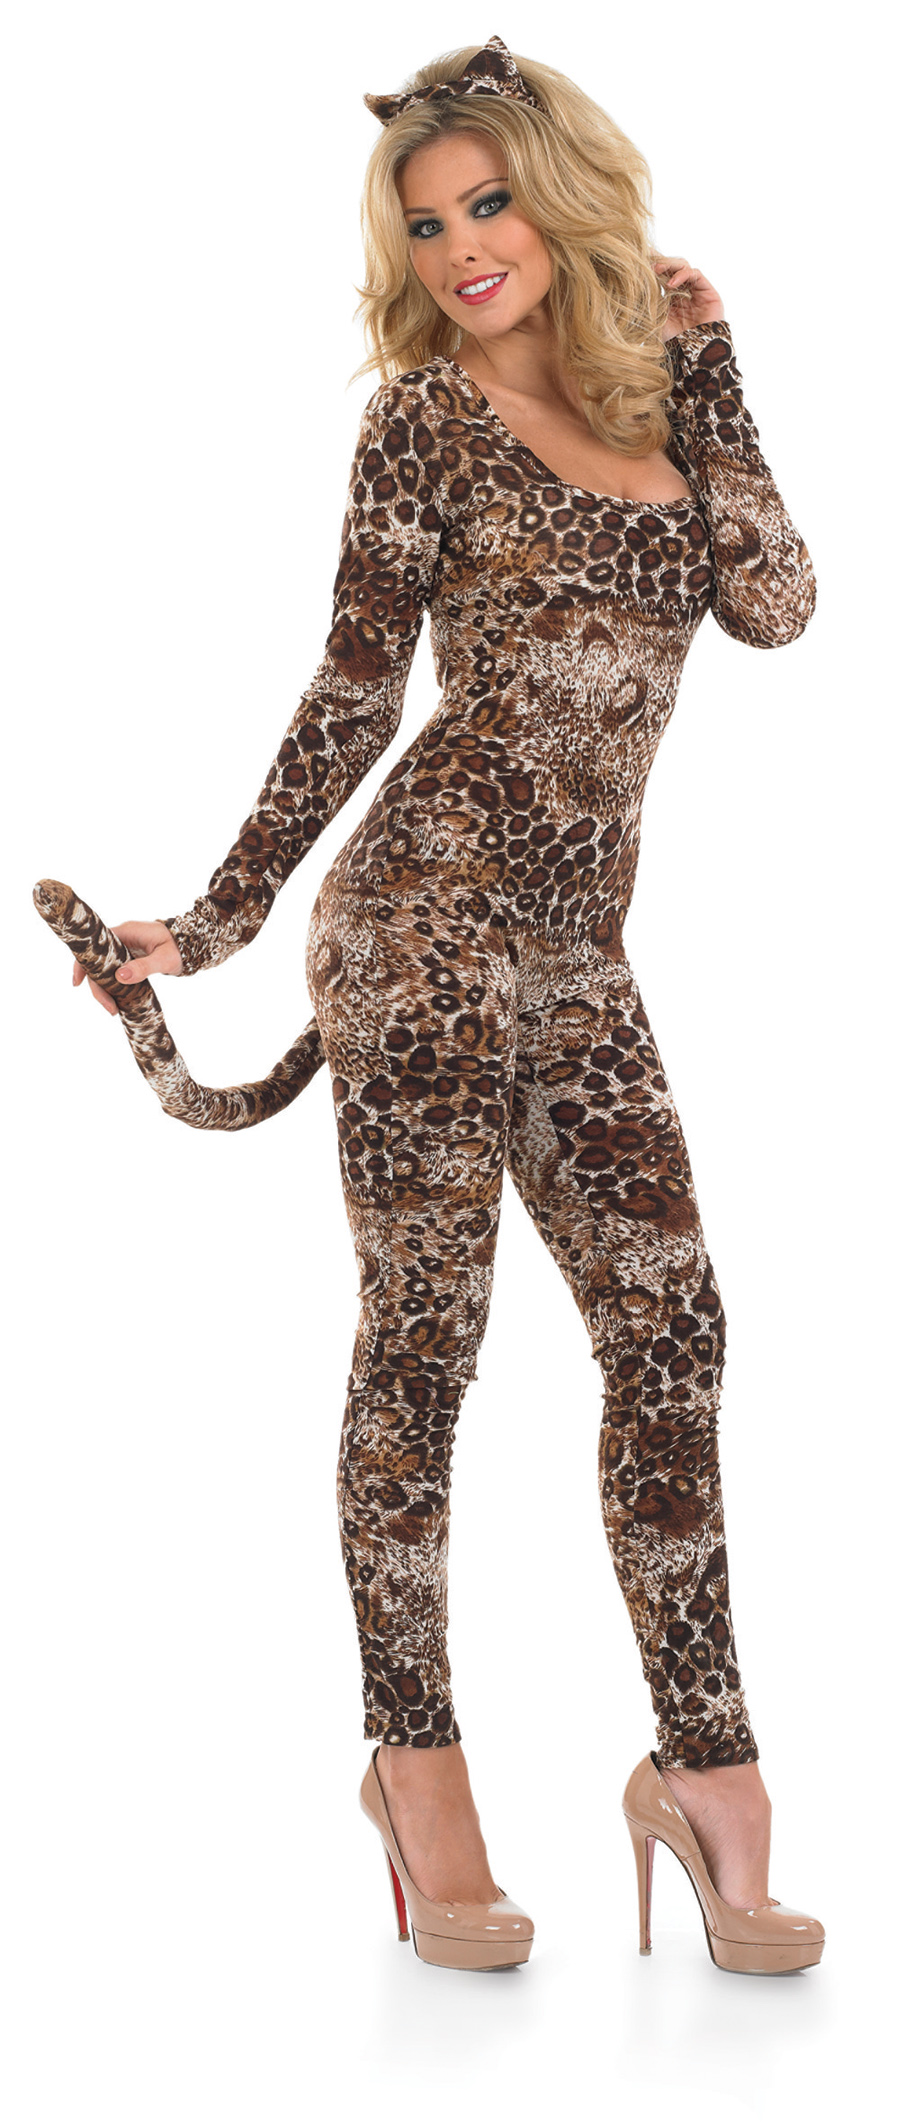 Shimmery Biketard Animal Print Large Child Costume Gallery Dance Costume. Condition is Pre-owned. Shipped with USPS Priority Mail.